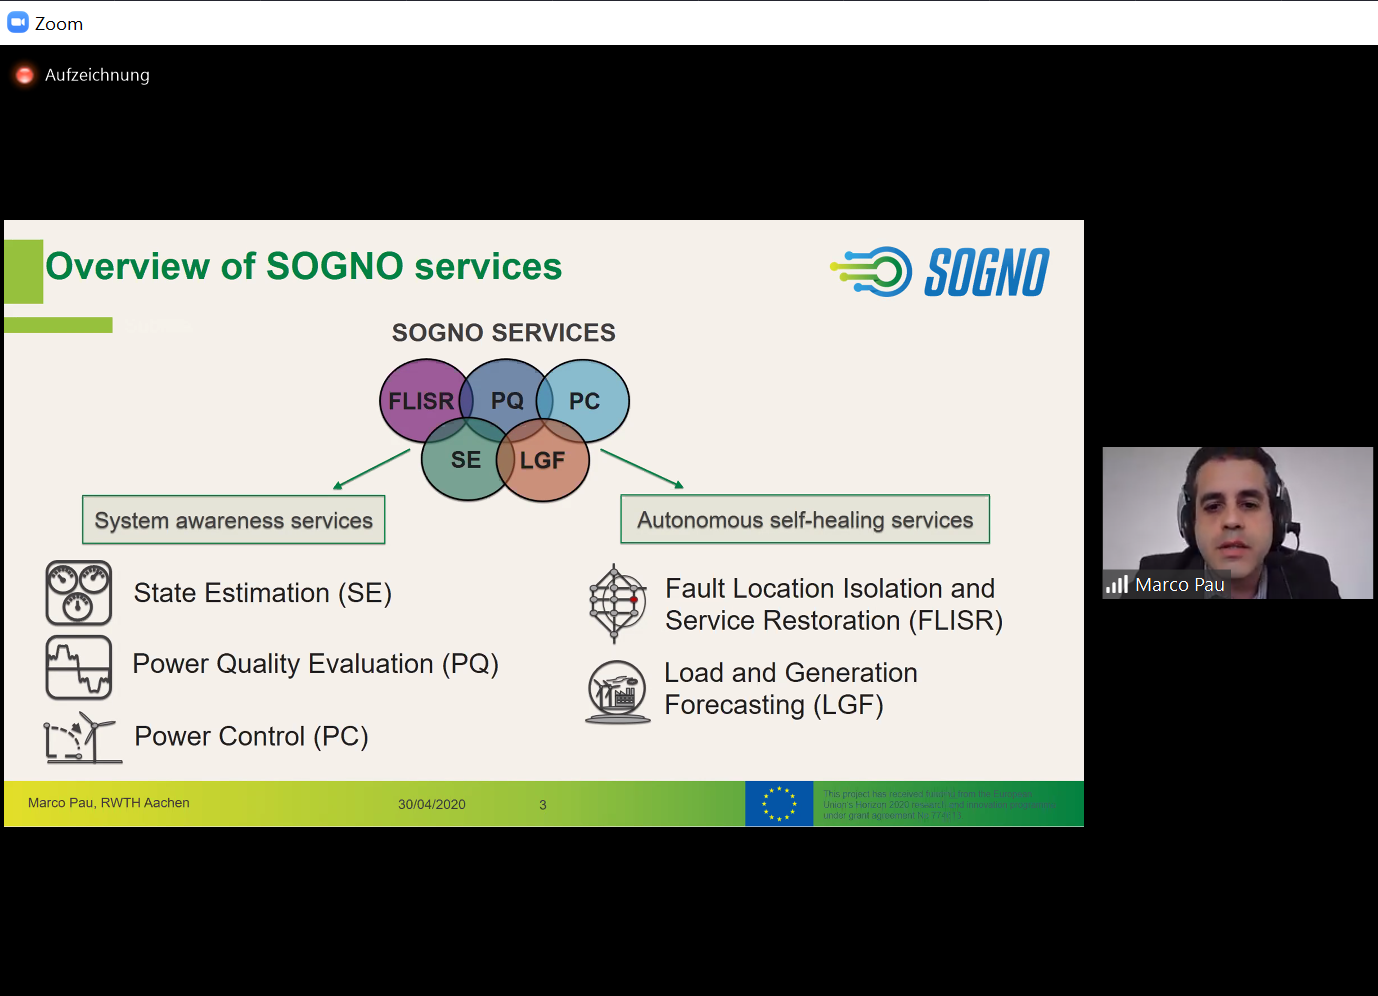 Marco Pau from RWTH presenting the SOGNO services